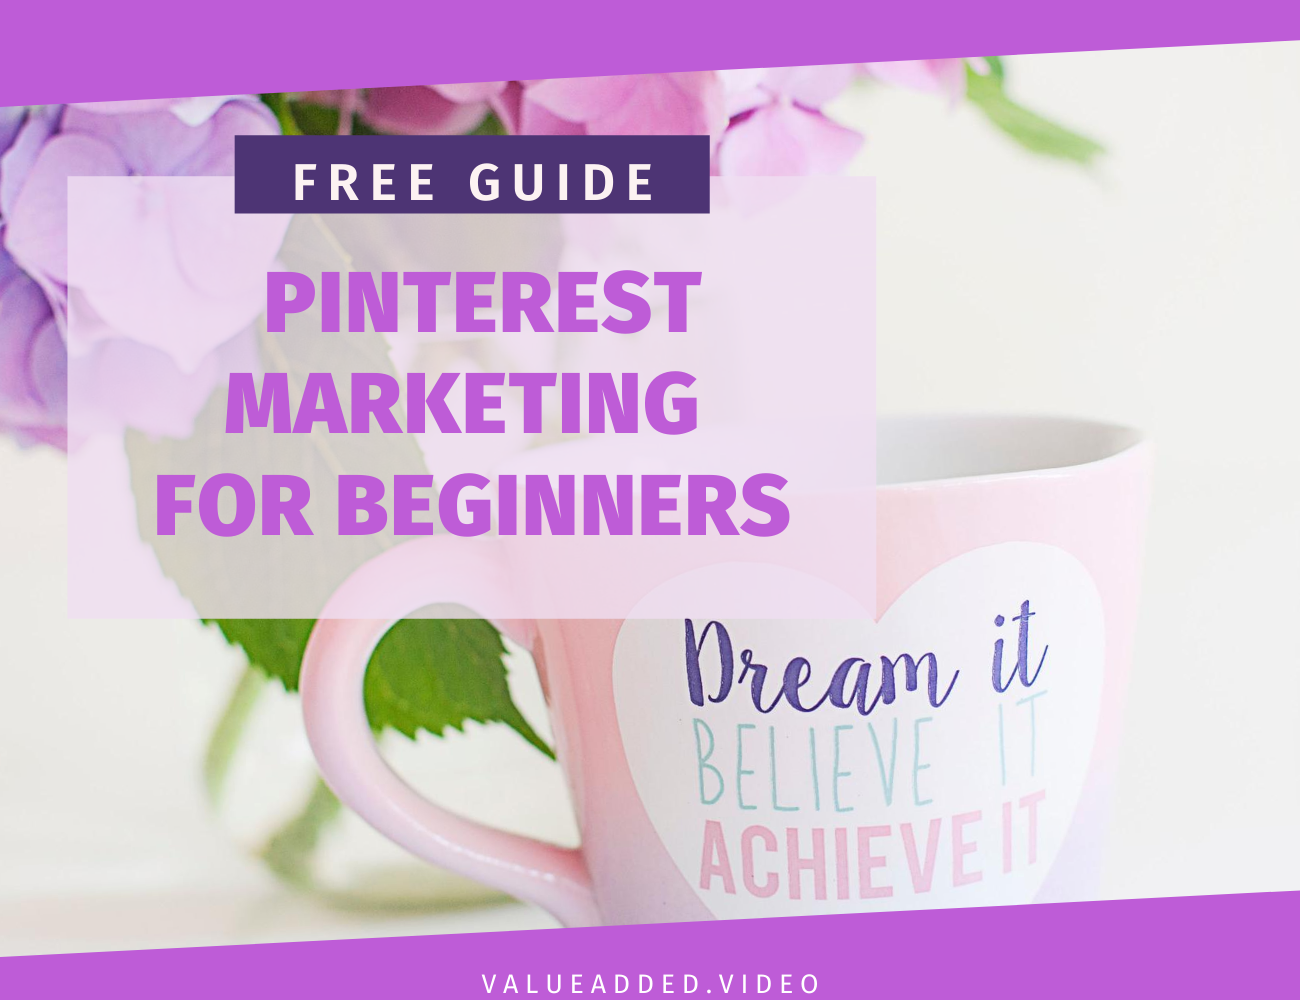 pinning to win free guide to pinterest marketing